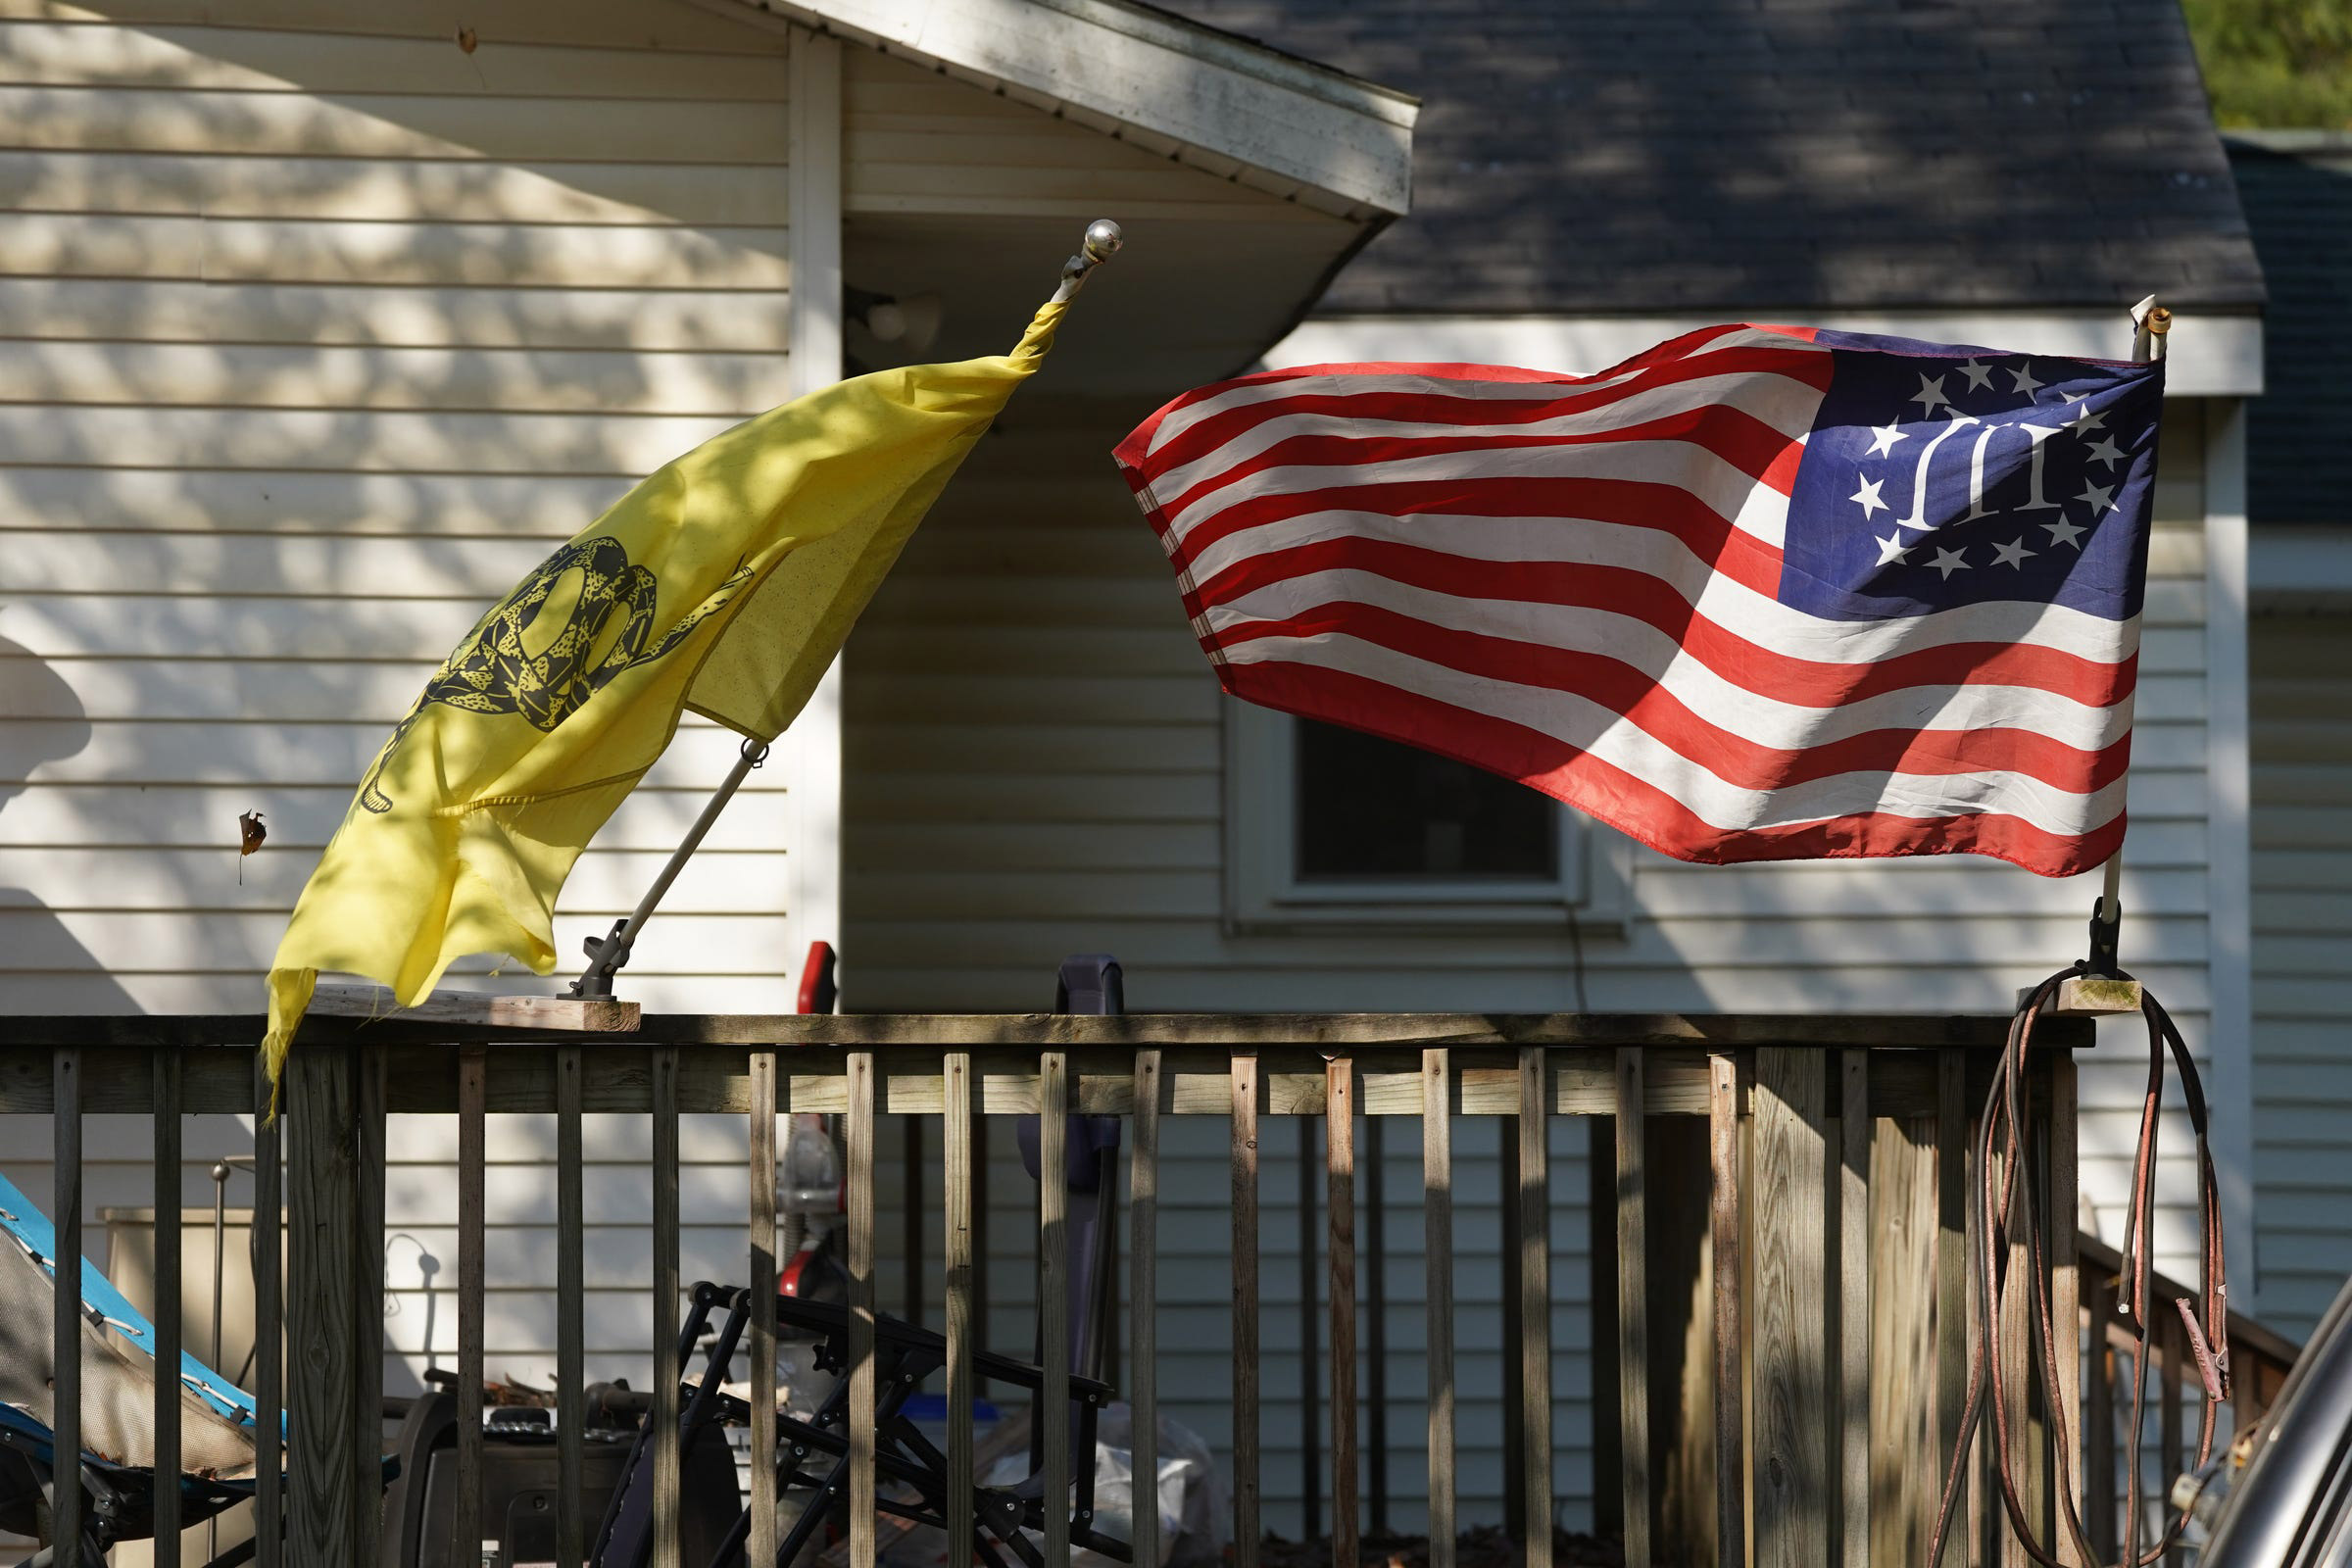 A Three Percenter flag and a Gadsden Flag fly onthe home of Michael Null in Plainwell, Mich., on October 9, 2020. Null one of 13 suspects accused of plotting to abduct and possibly harm Michigan Gov. Gretchen Whitmer.